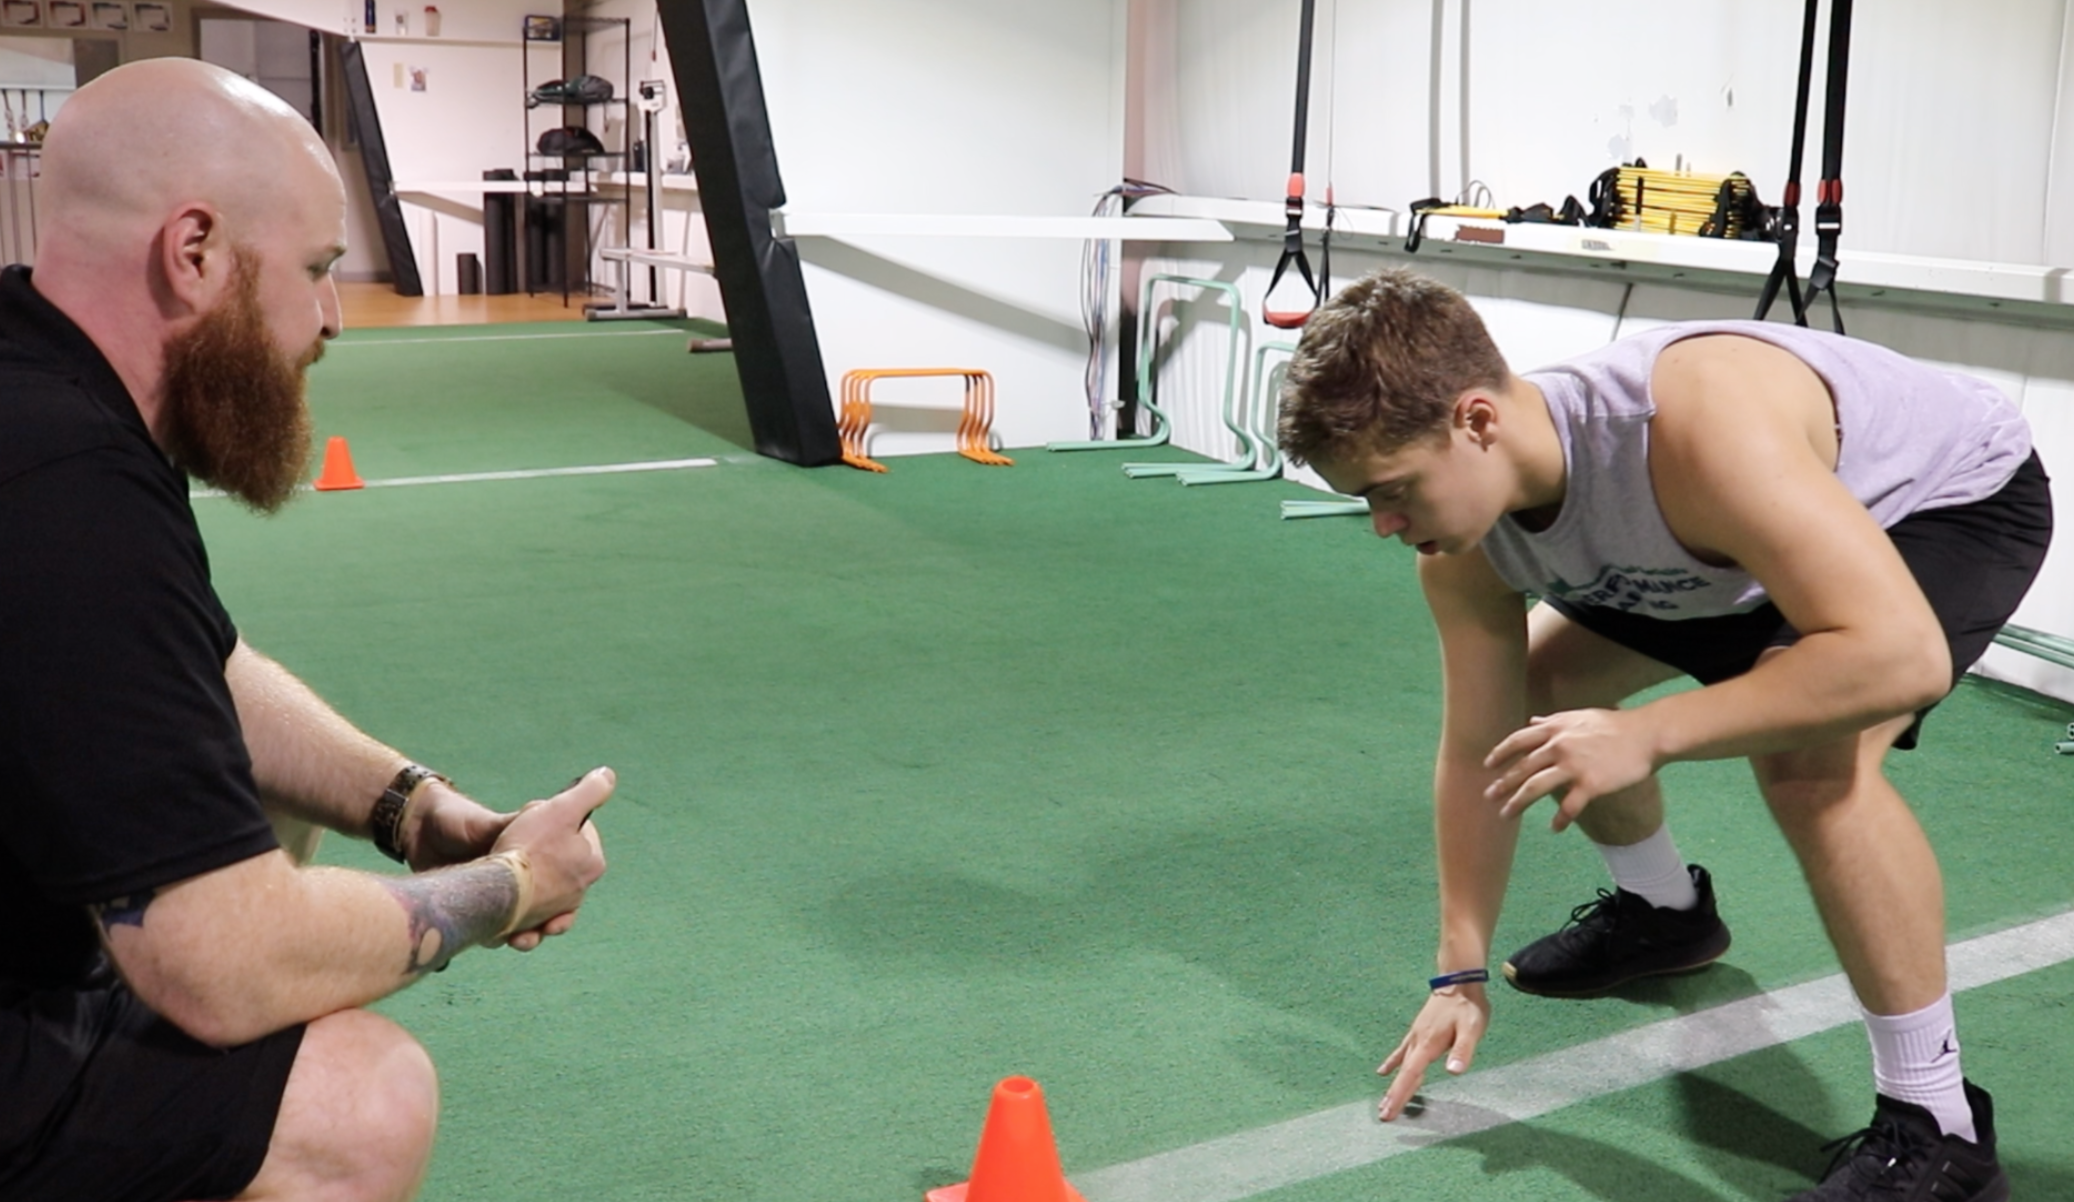 One-to-one personalized training to increase speed, agility, strength and overall skills. Call ORS Performance Training at 517-990-6222 to schedule your sessions.